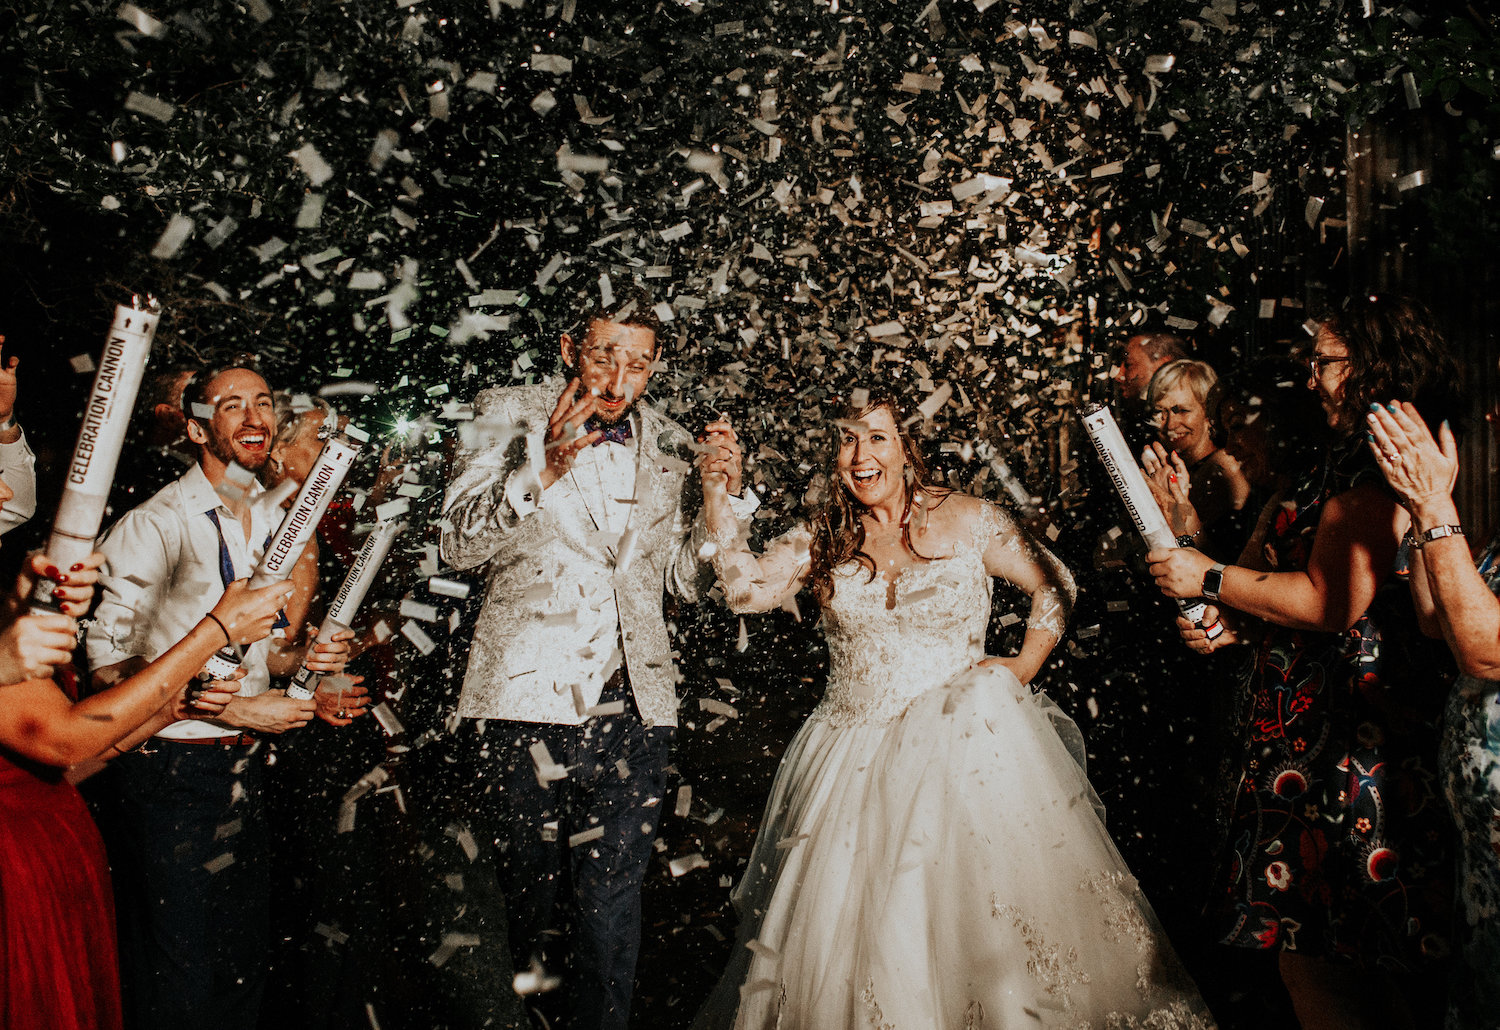 Wedding exit with confetti cannons